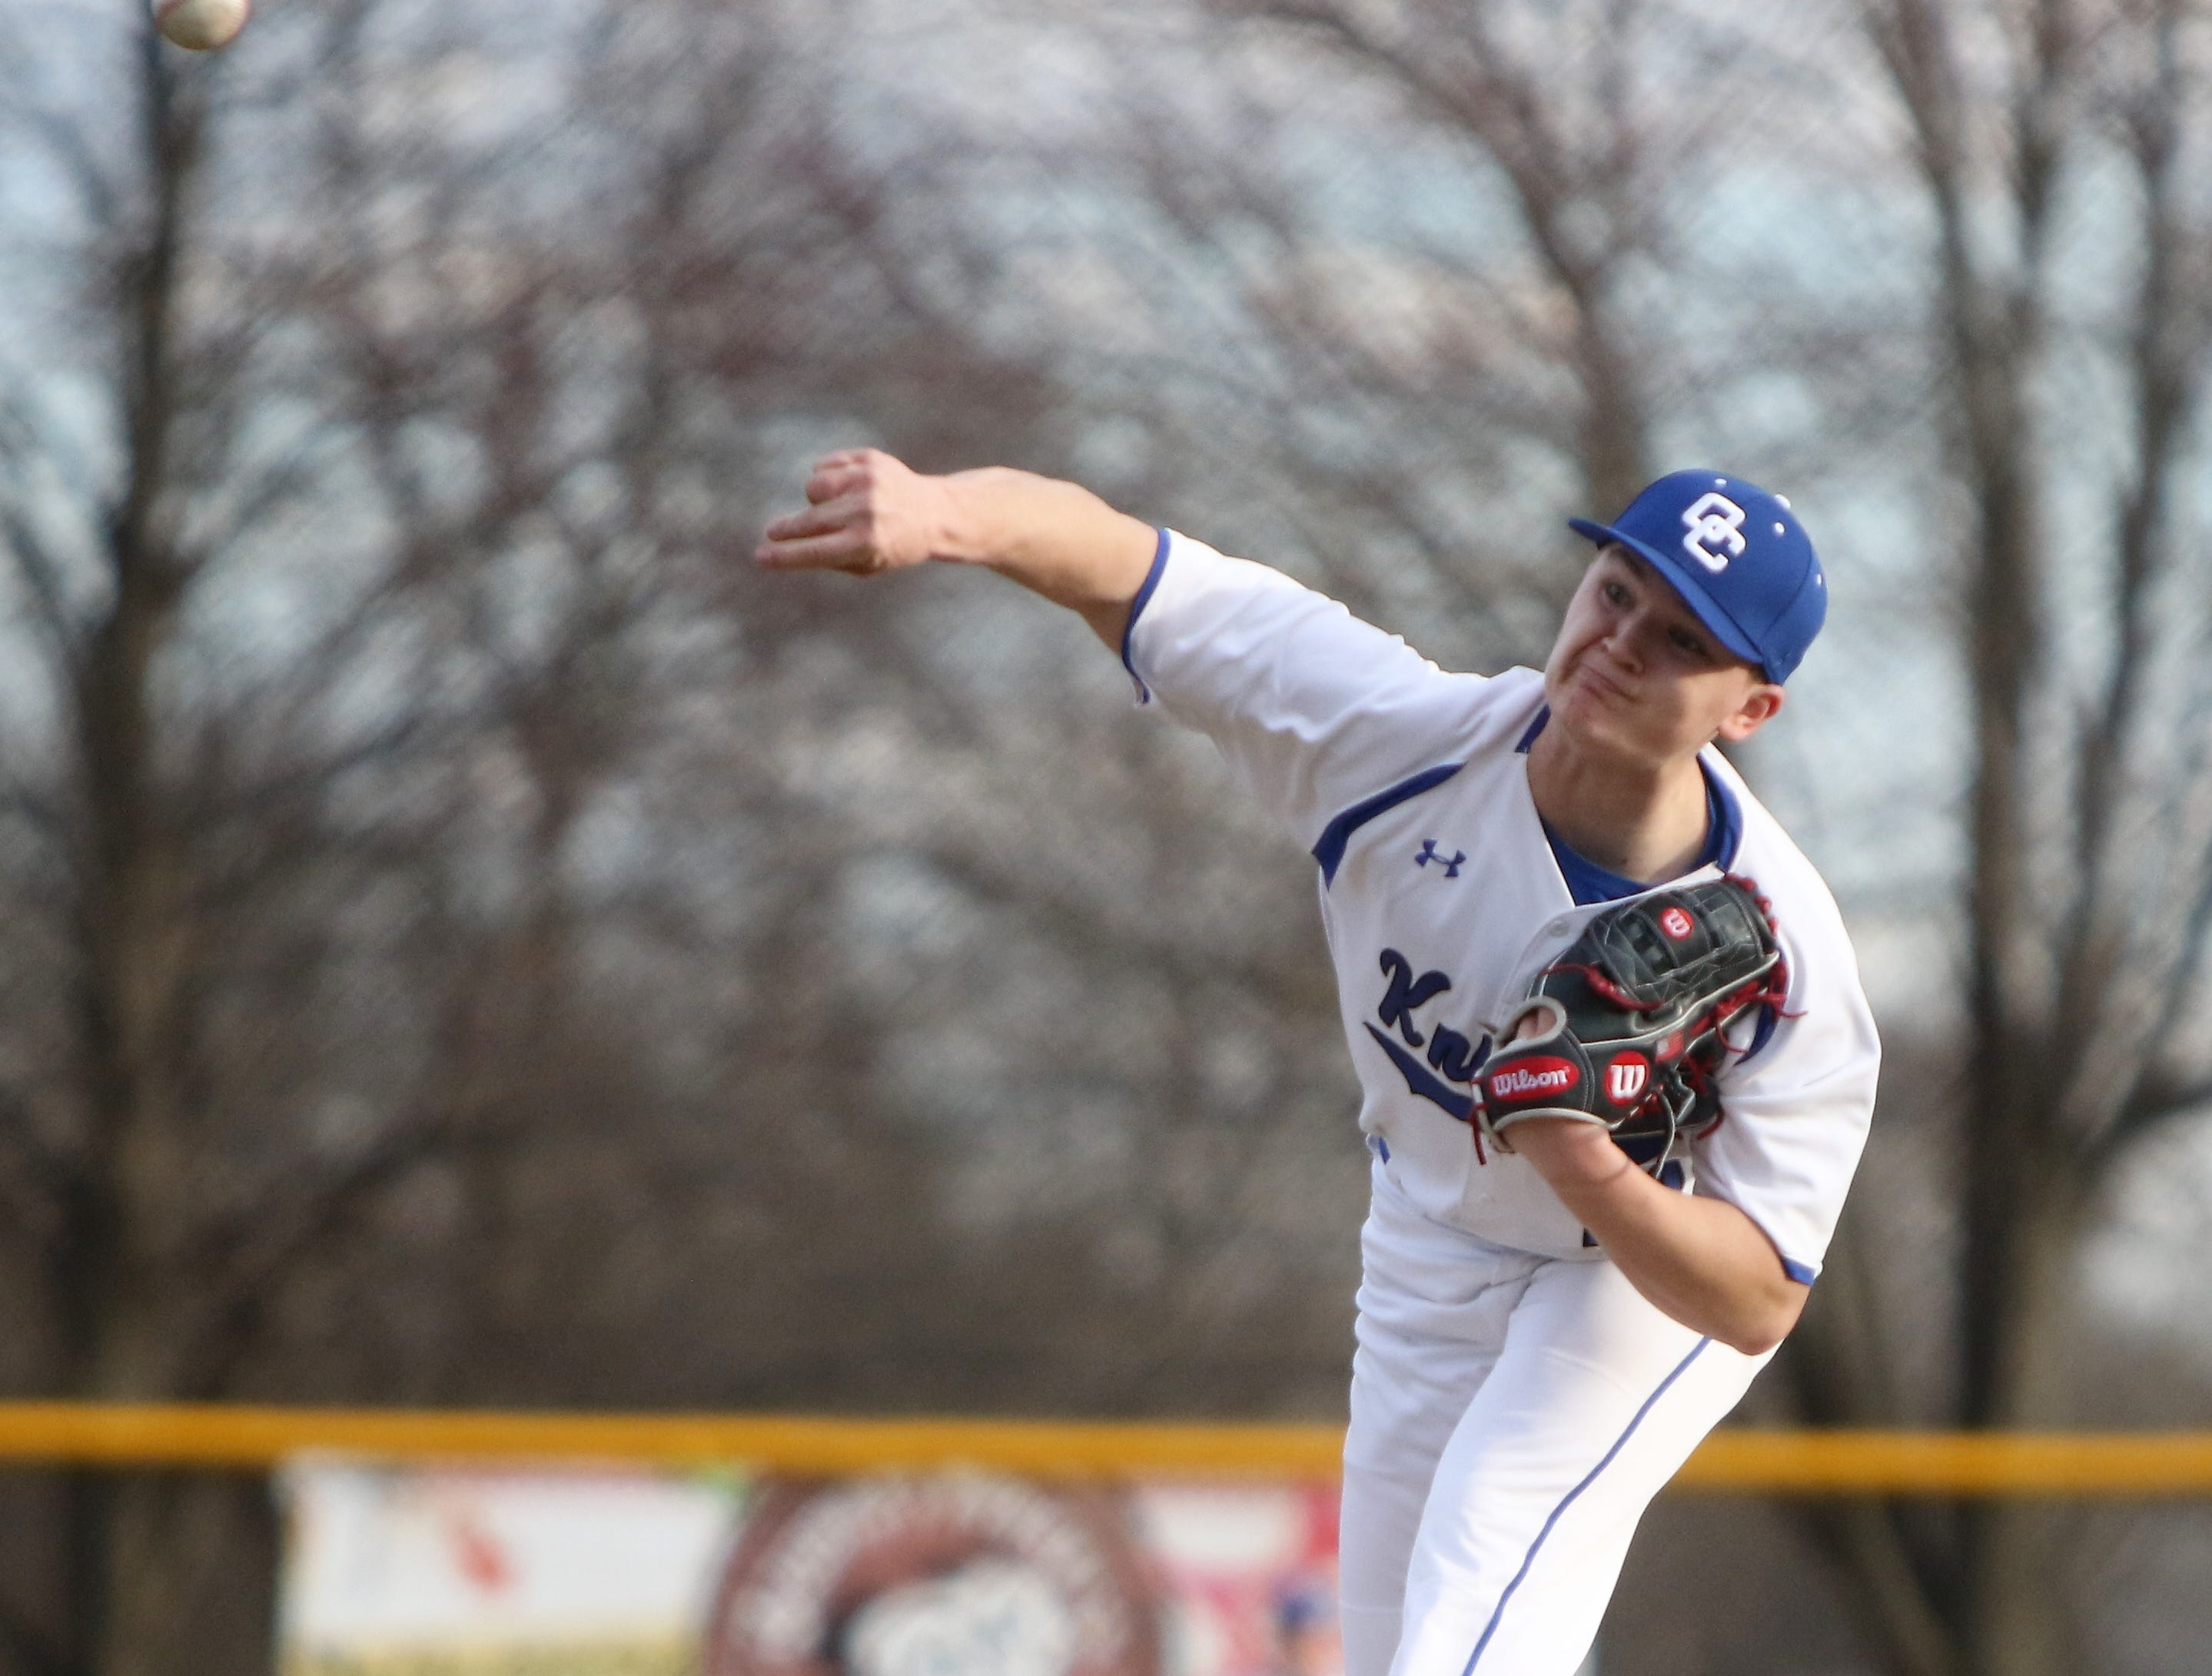 Oak Creek pitcher Jake Thoresen delivers a pitch against Kenosha Bradford on April 9, 2019.